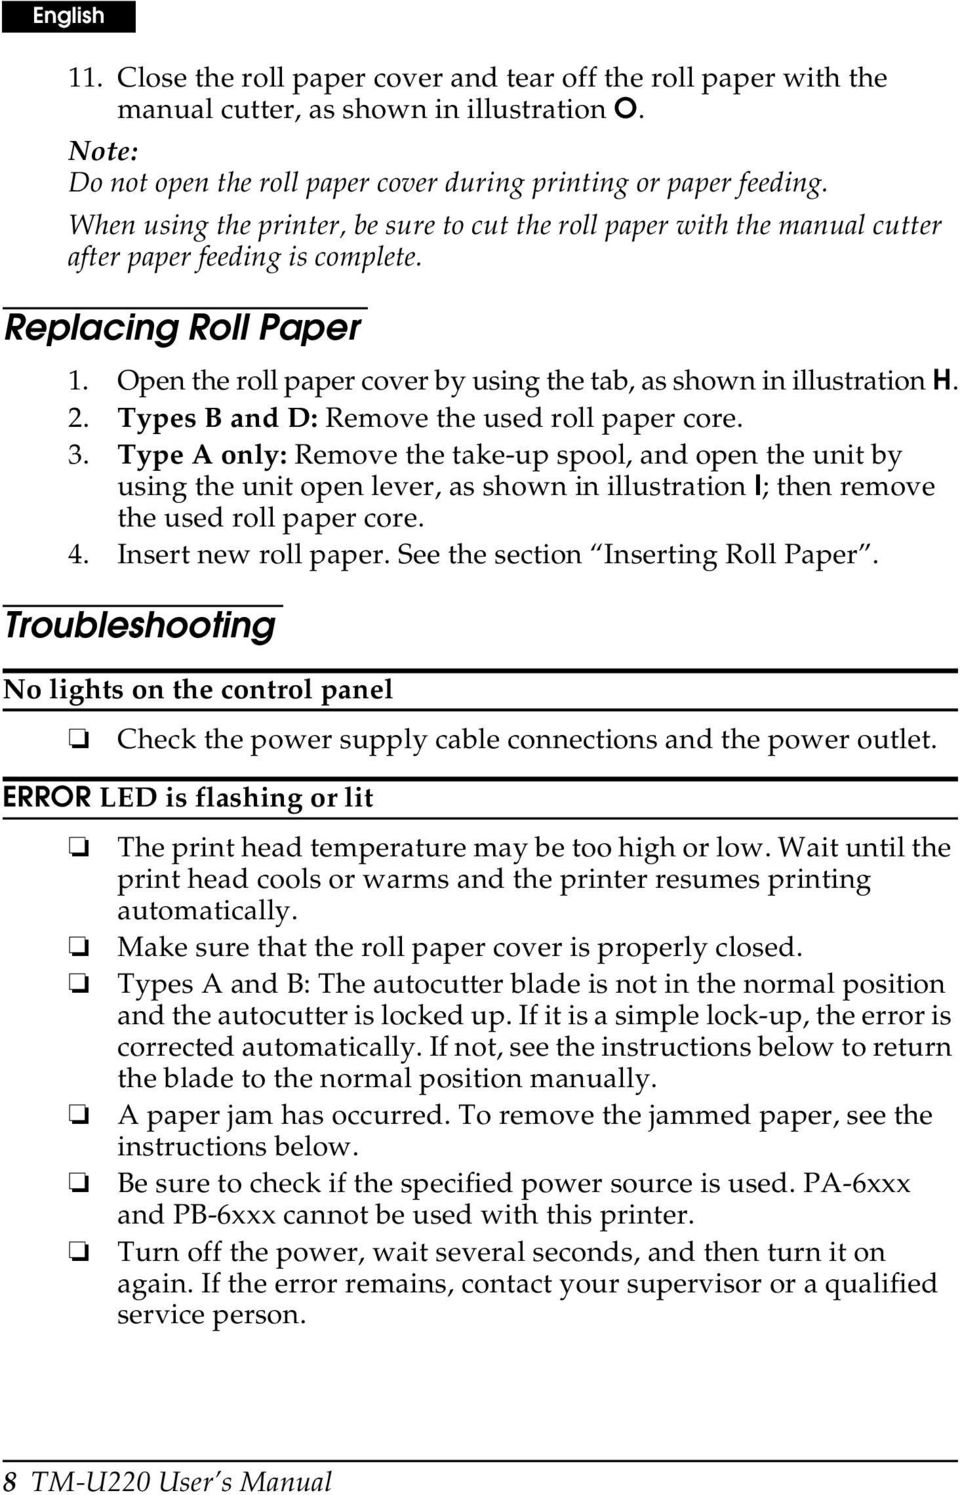 Open the roll paper cover by using the tab, as shown in illustration H. 2. Types B and D: Remove the used roll paper core. 3.